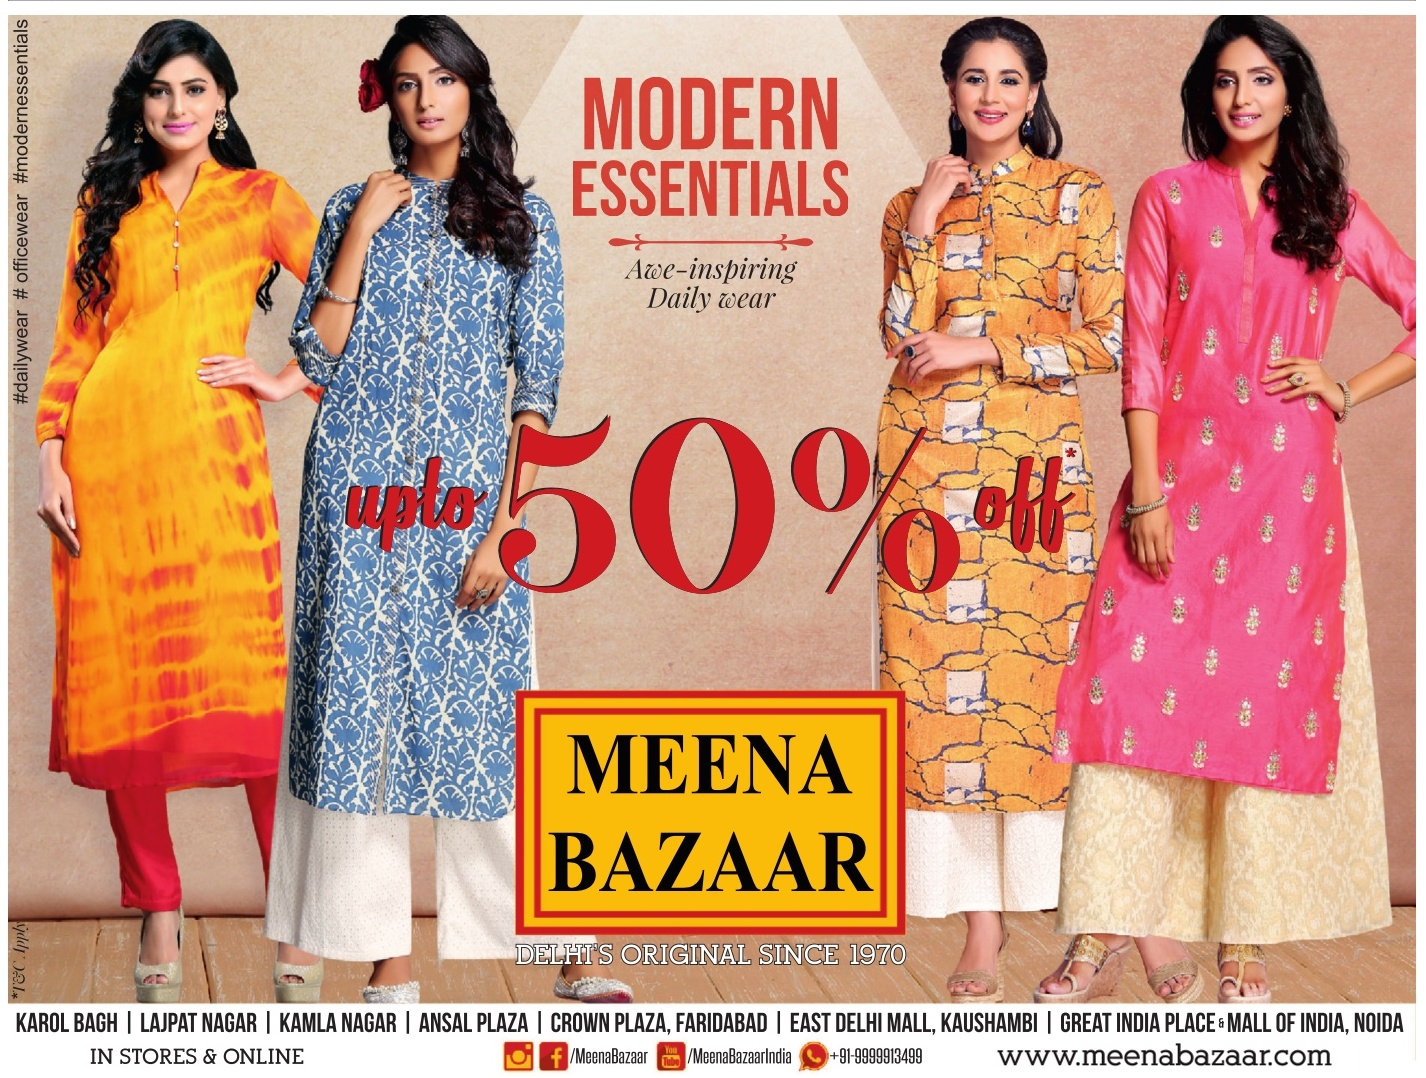 Up to 50% on Meena Bazar | April 2016 ugadi festival discount offer